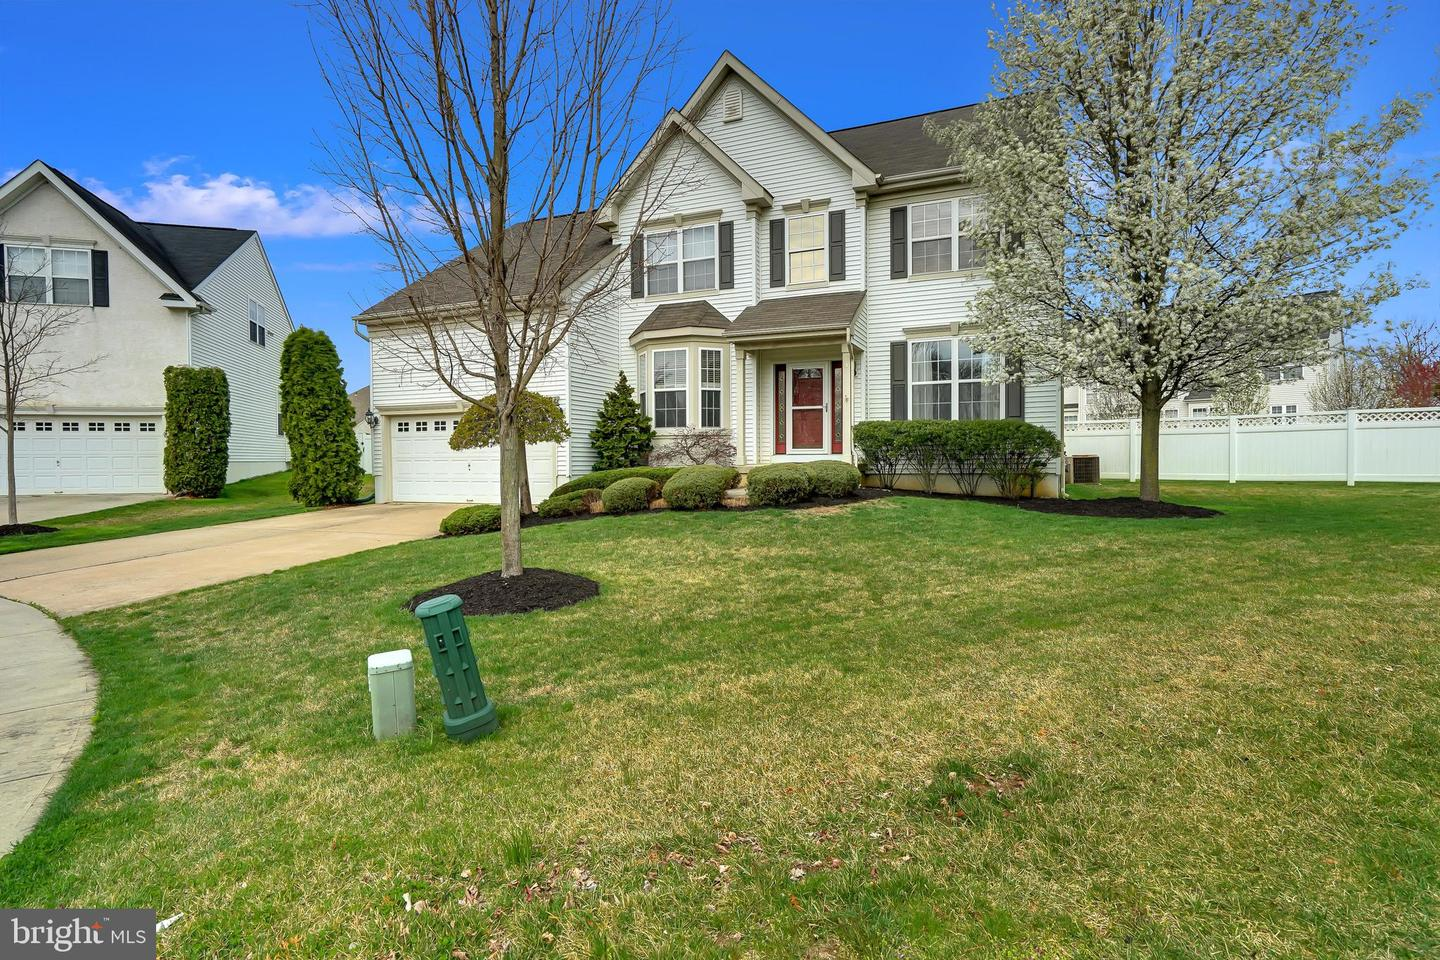 Maison unifamiliale pour l Vente à 16 GATESWOOD Bordentown, New Jersey 08505 États-Unis